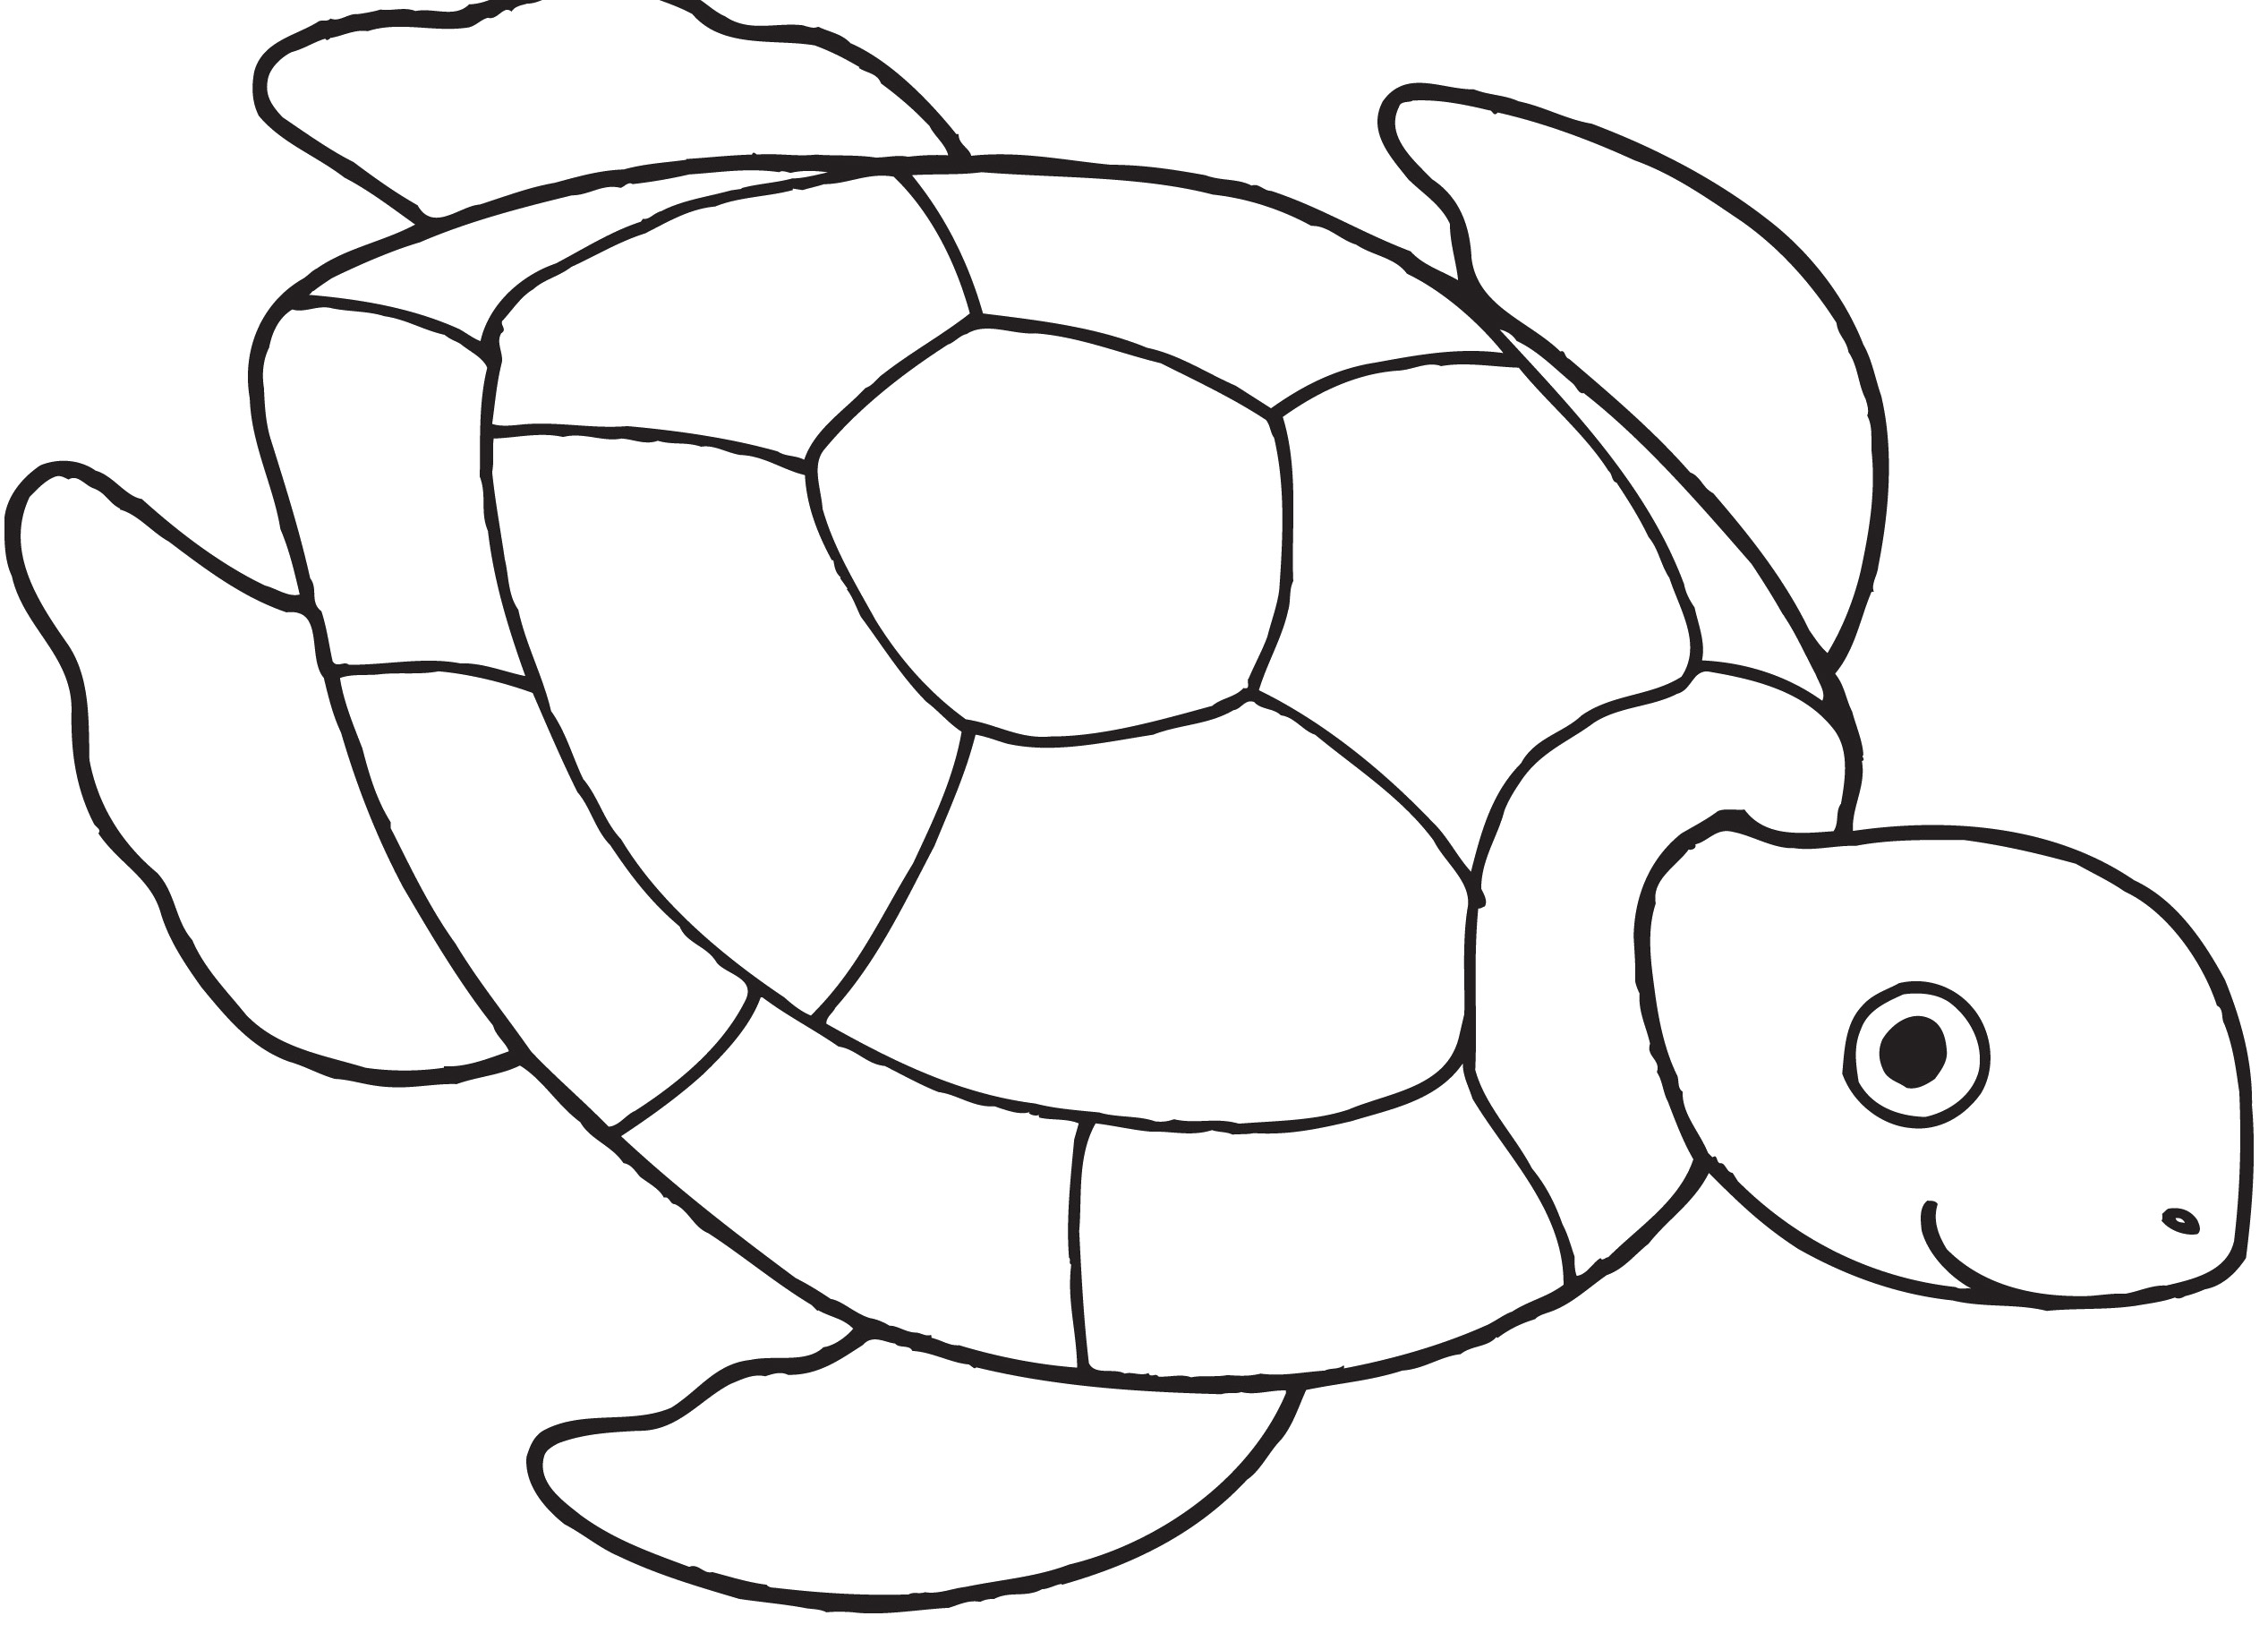 Turtle Black And White Clipart Coloring Page.